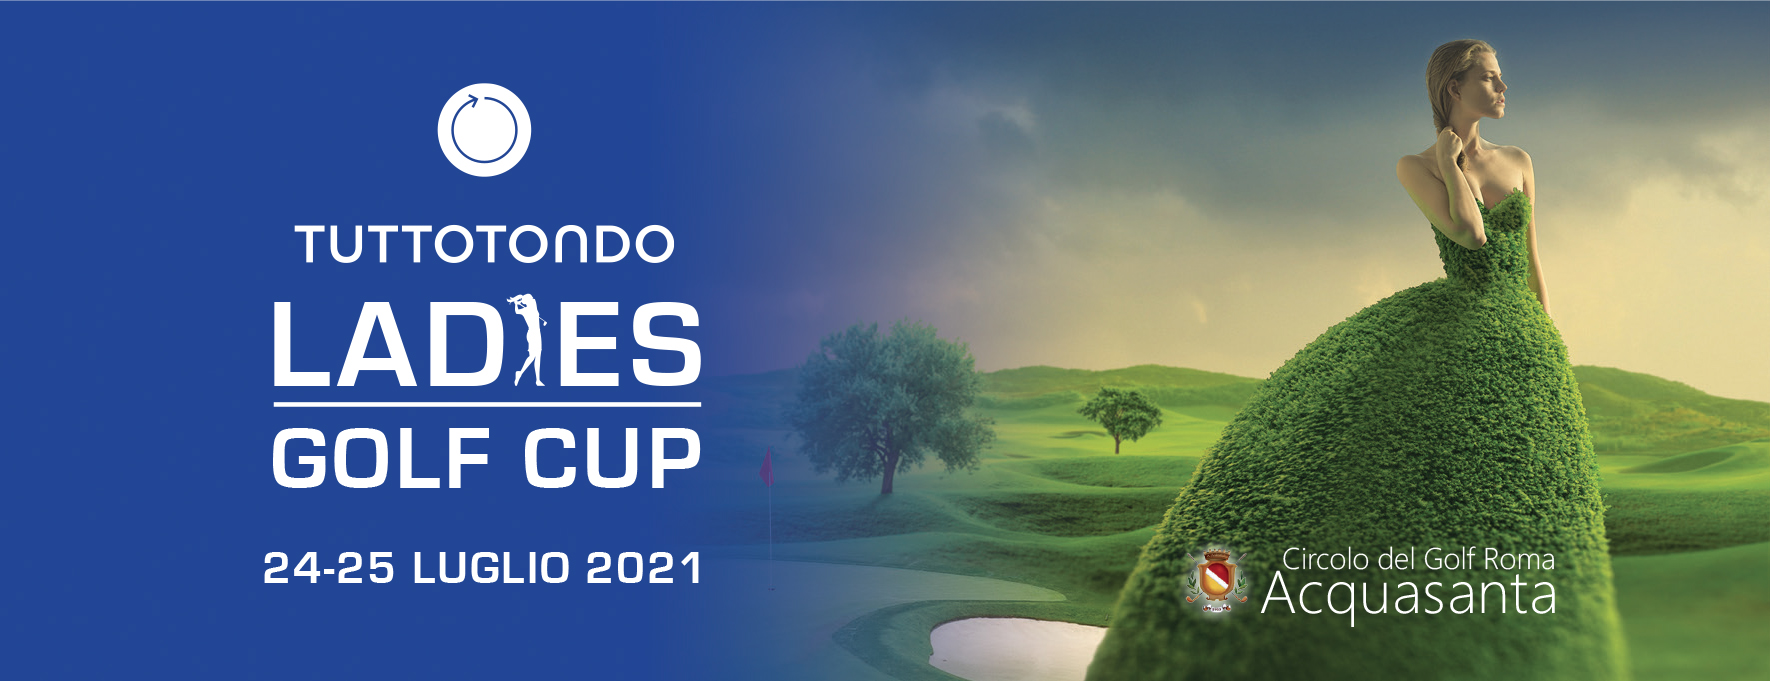 Ladies Golf Cup by Tuttotondo